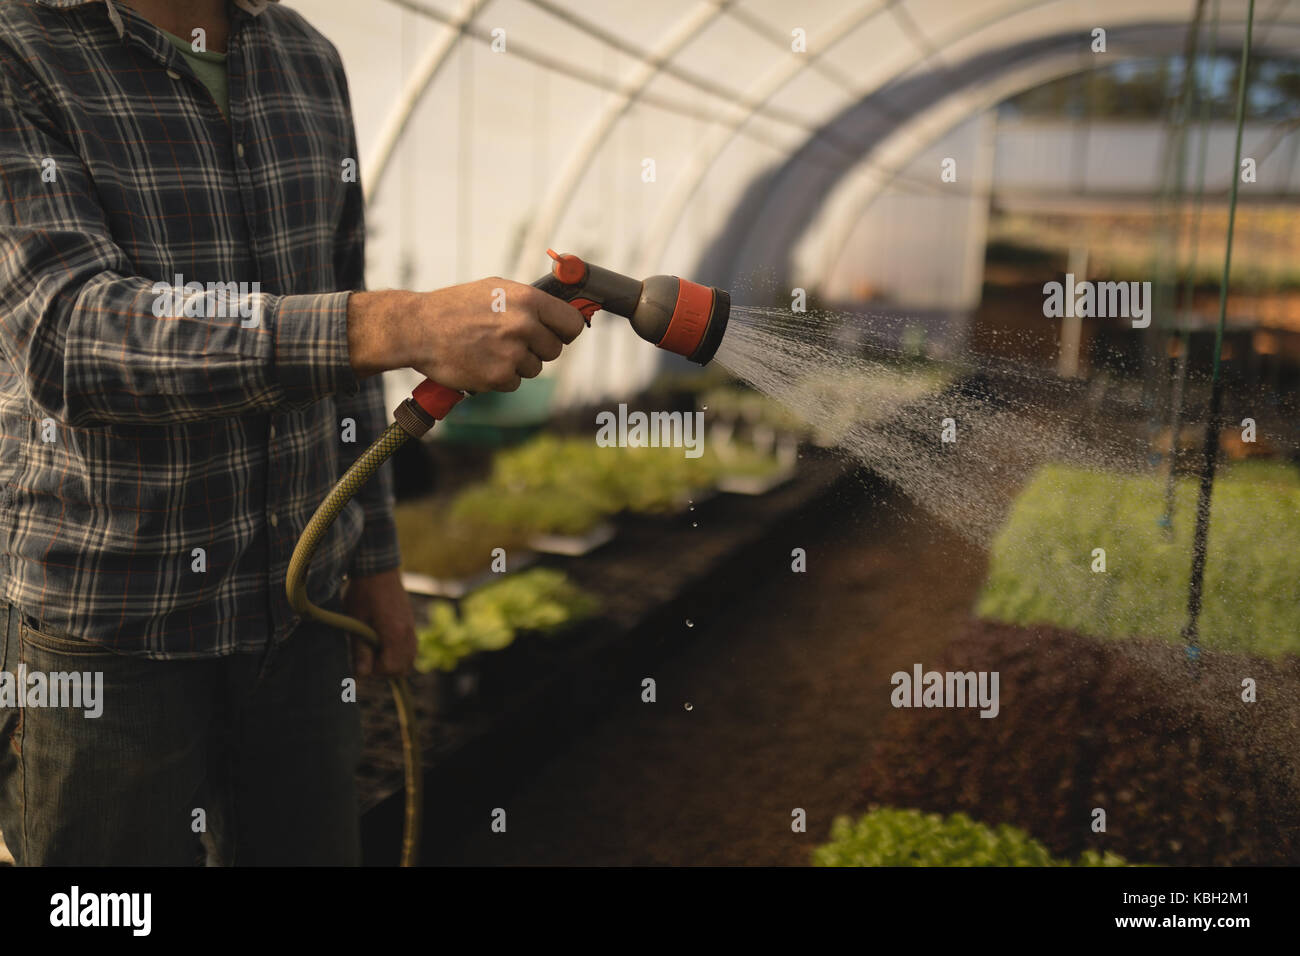 Mid-section of farmer watering plants in greenhouse Stock Photo